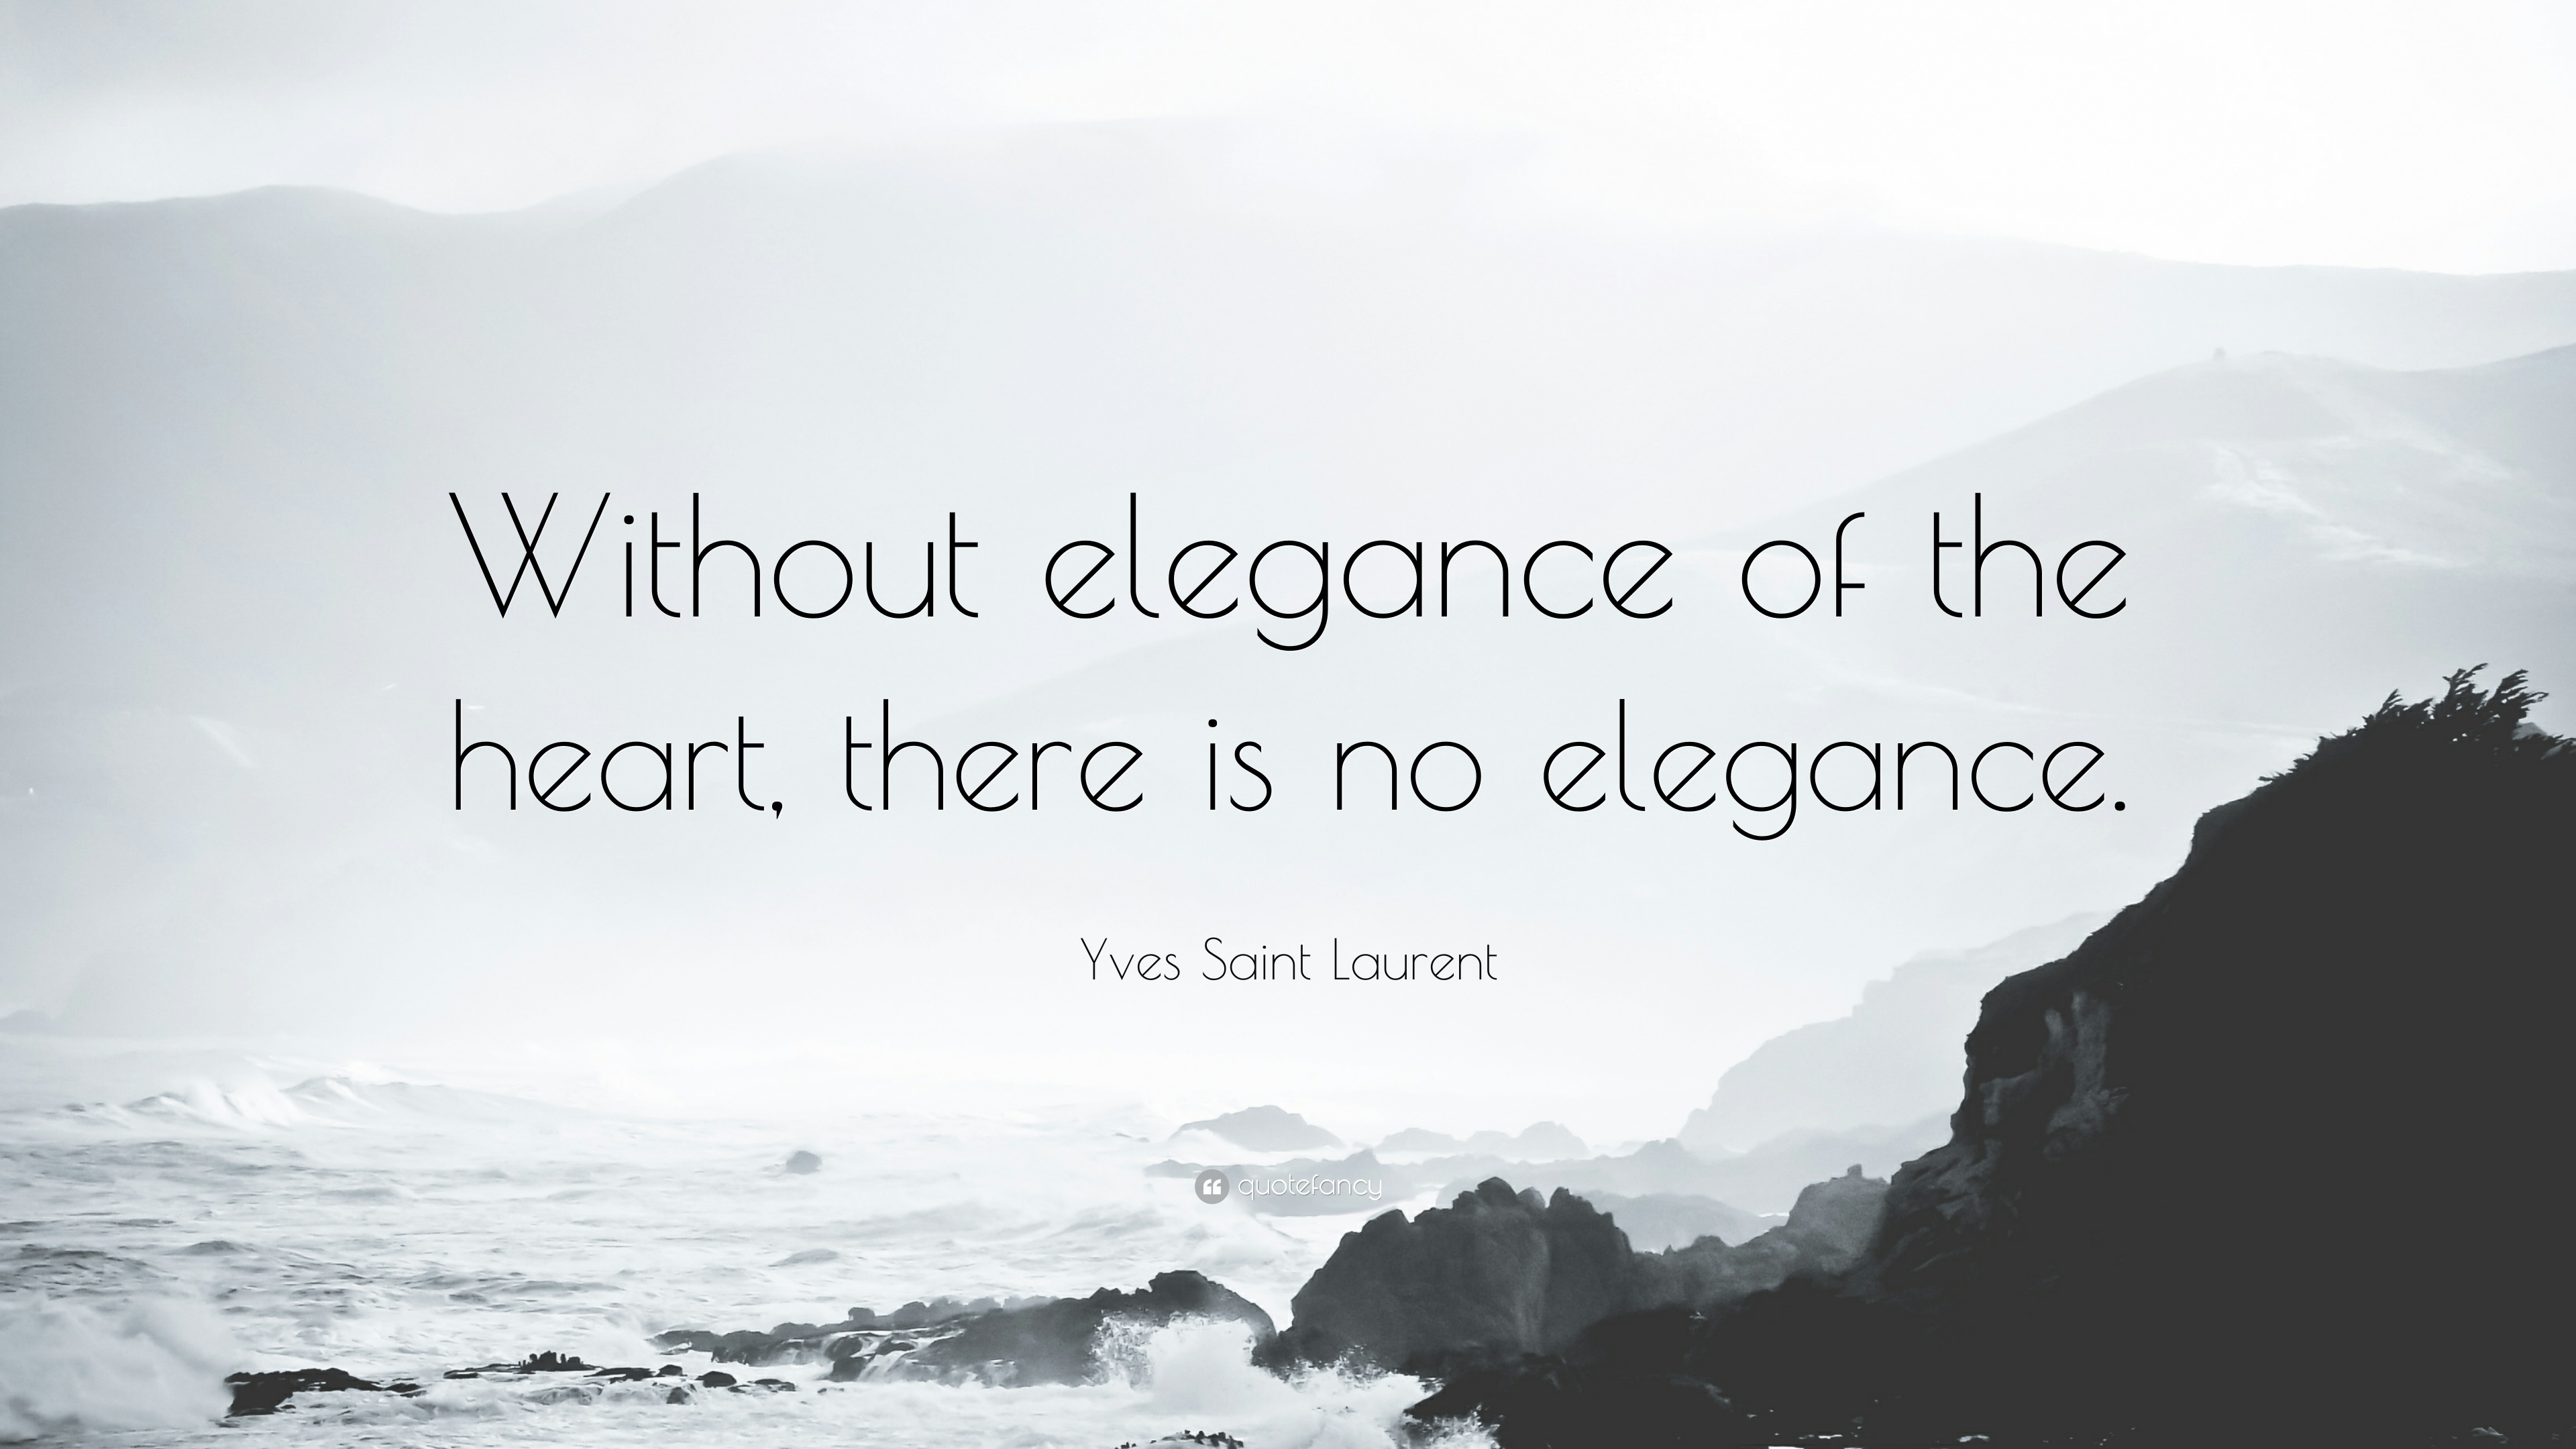 Yves Saint Laurent Quote Without Elegance Of The Heart